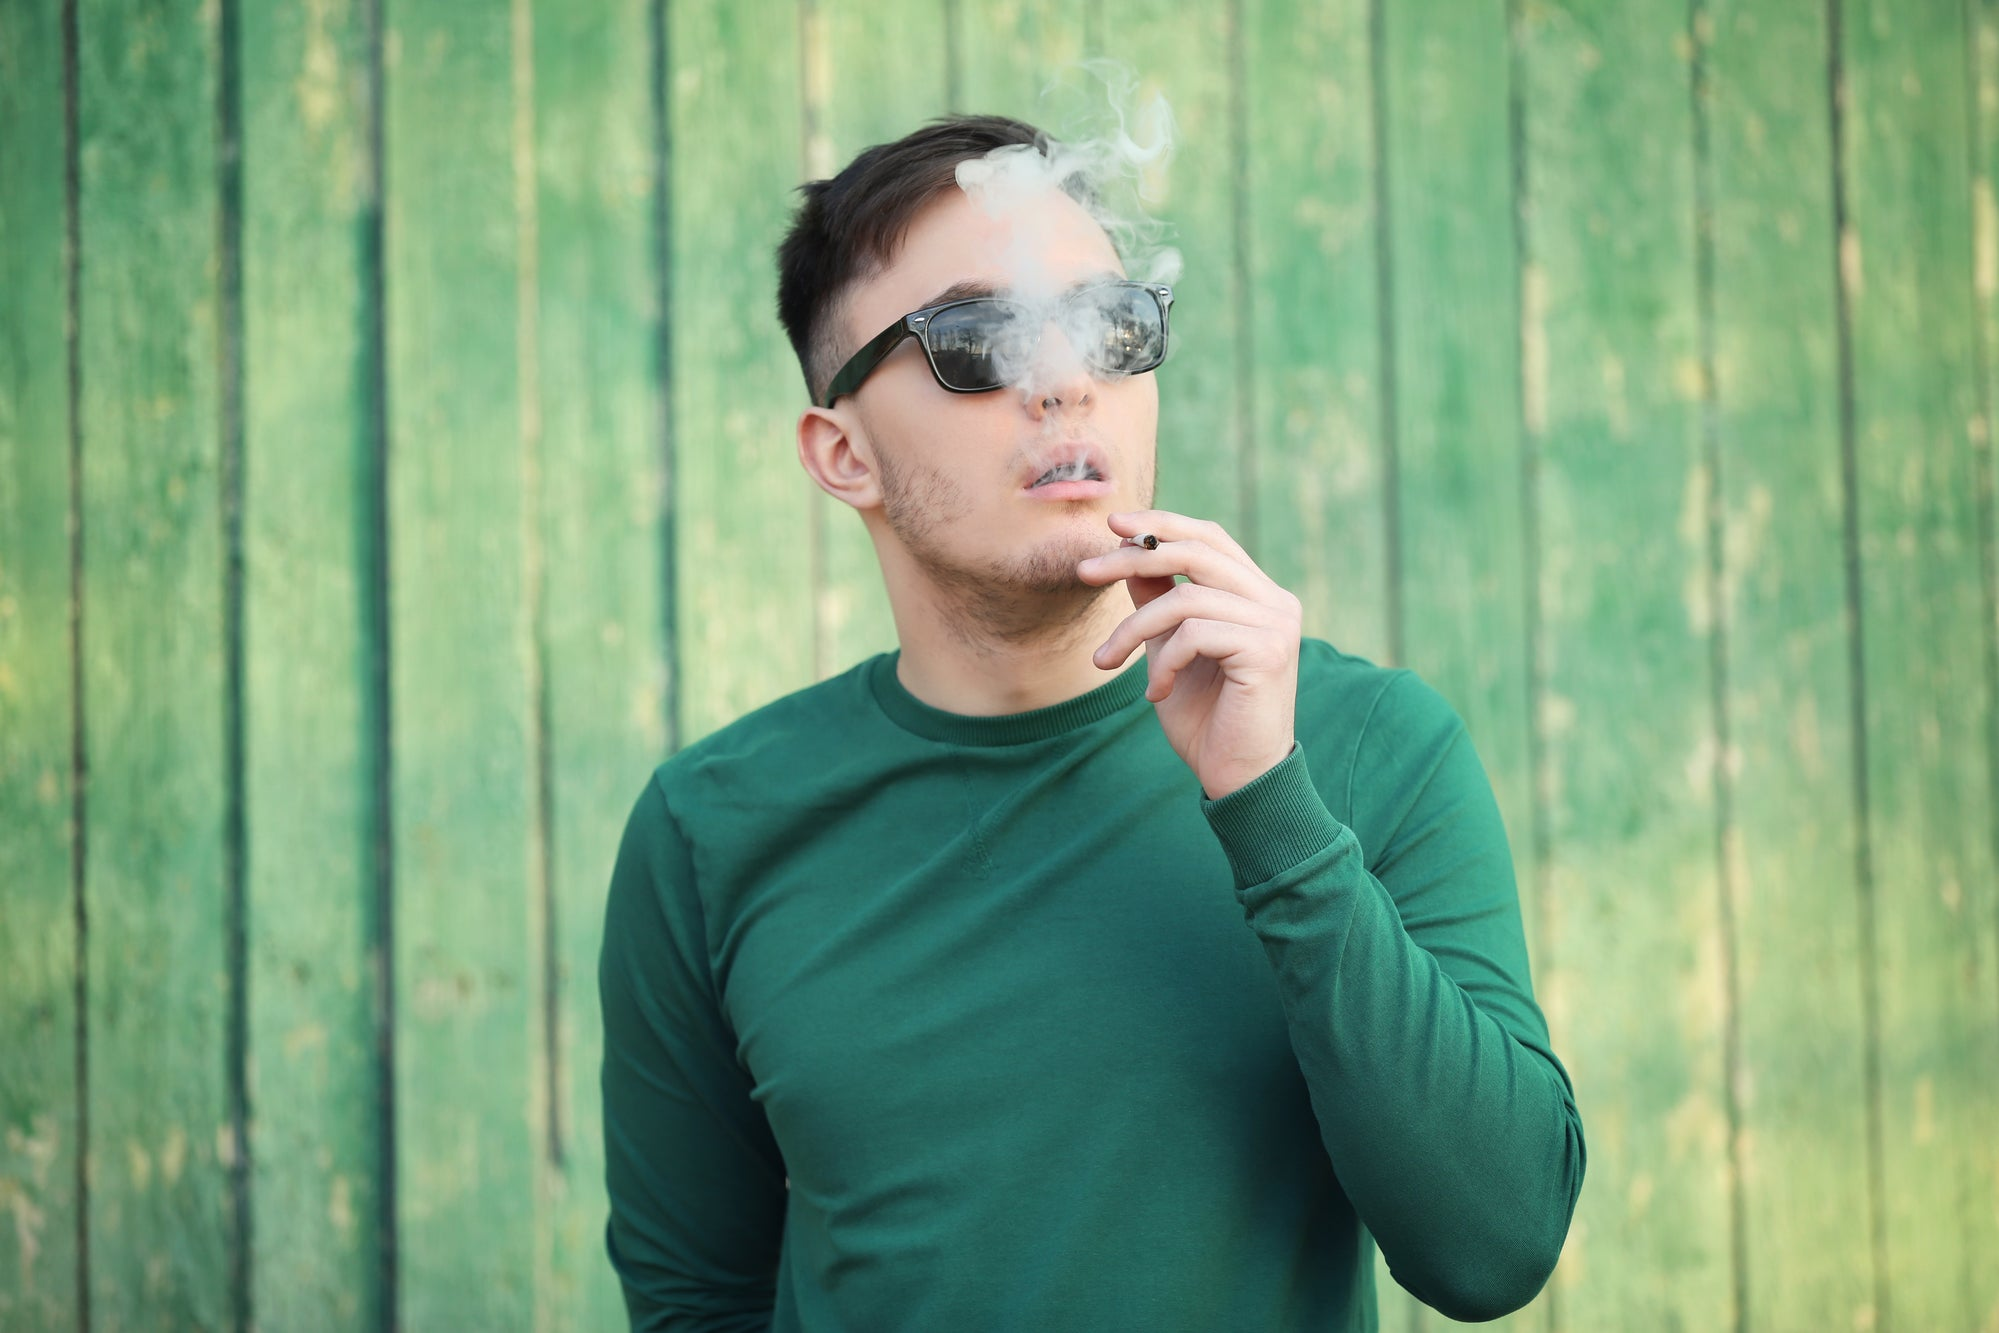 Nobody really knows what smoking pot does to your lungs